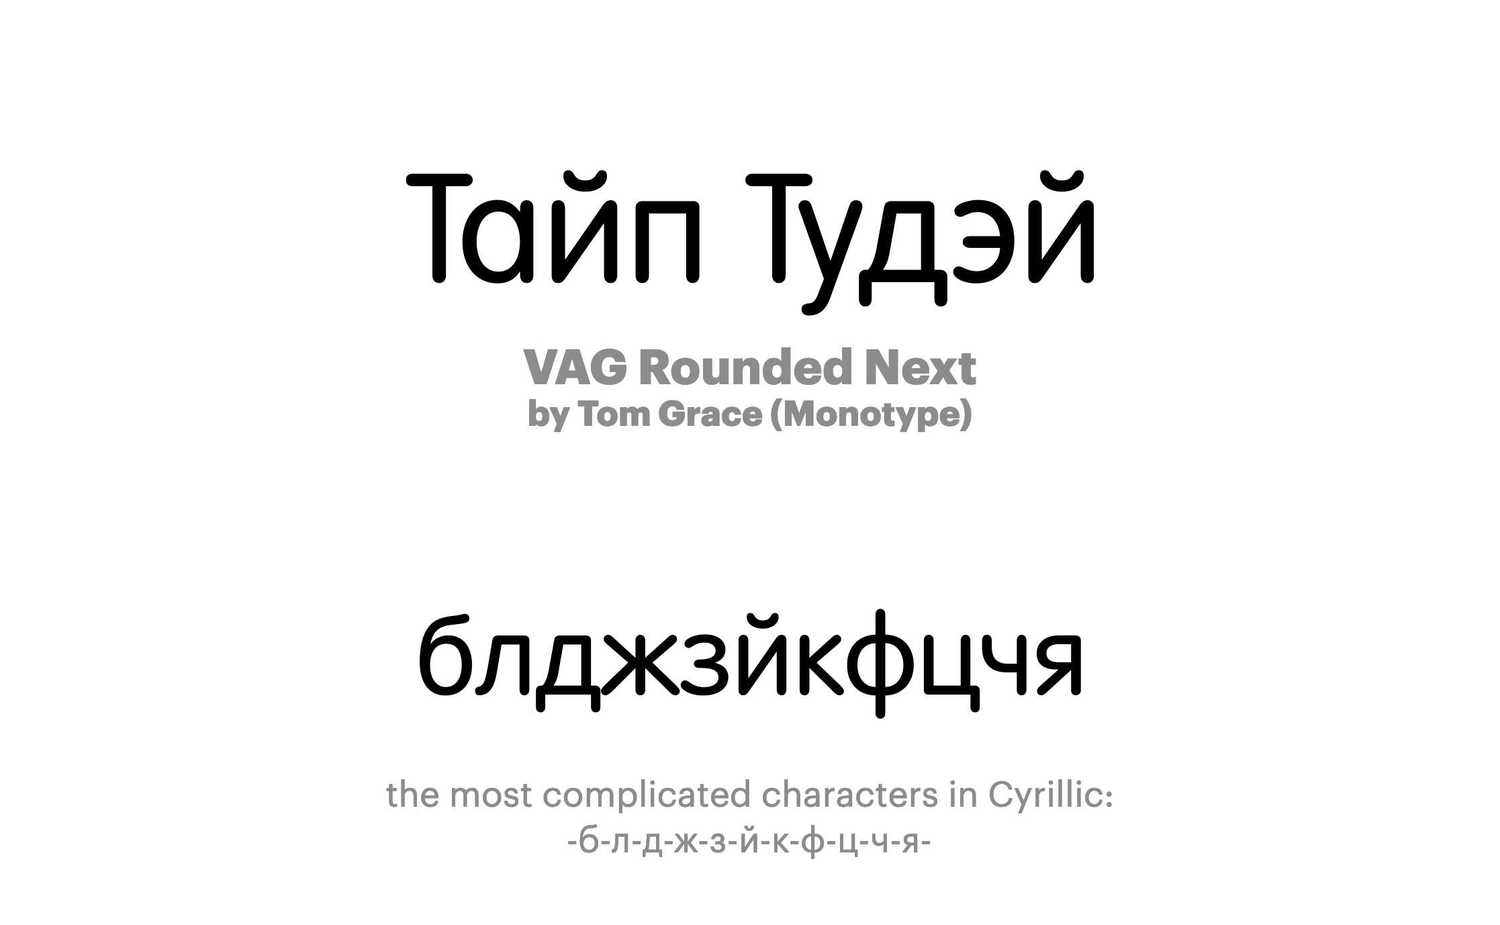 VAG-Rounded-Next-by-Tom-Grace-(Monotype)